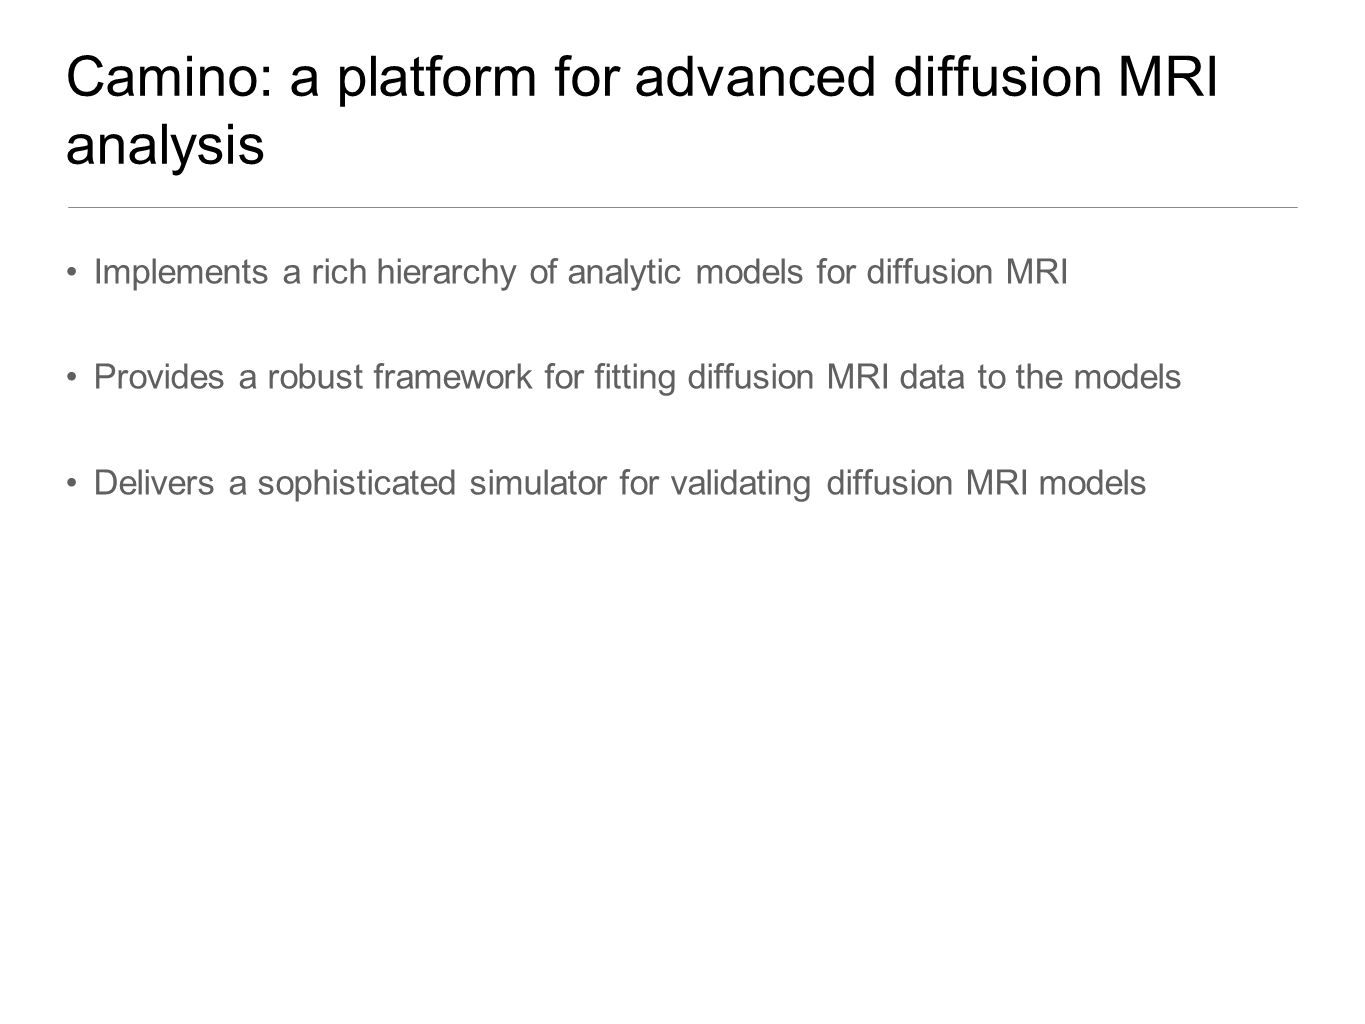 Camino: a platform for advanced diffusion MRI analysis Implements a rich hierarchy of analytic models for diffusion MRI Provides a robust framework for fitting diffusion MRI data to the models Delivers a sophisticated simulator for validating diffusion MRI models